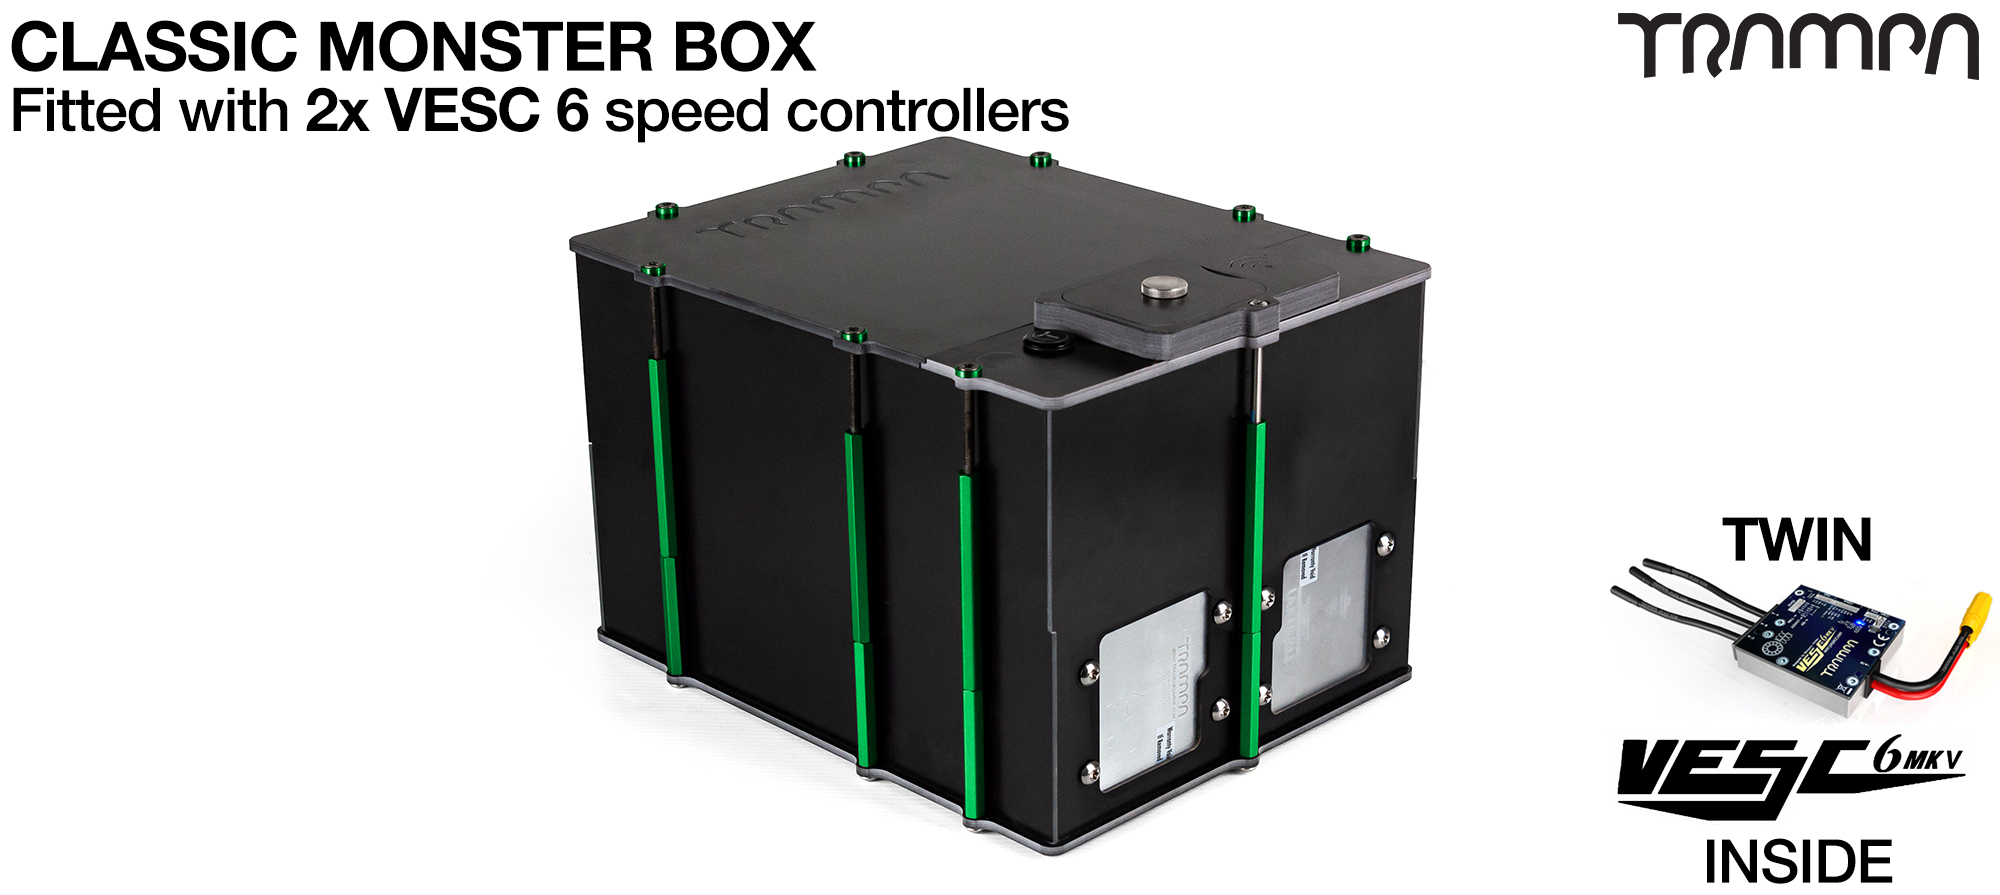 Classic MONSTER Box MkV DOUBLE STACKER supplied with 2x VESC 6 & 1x Externaly Mounted NRF VESC Connect Dongle & Cable  Fitted